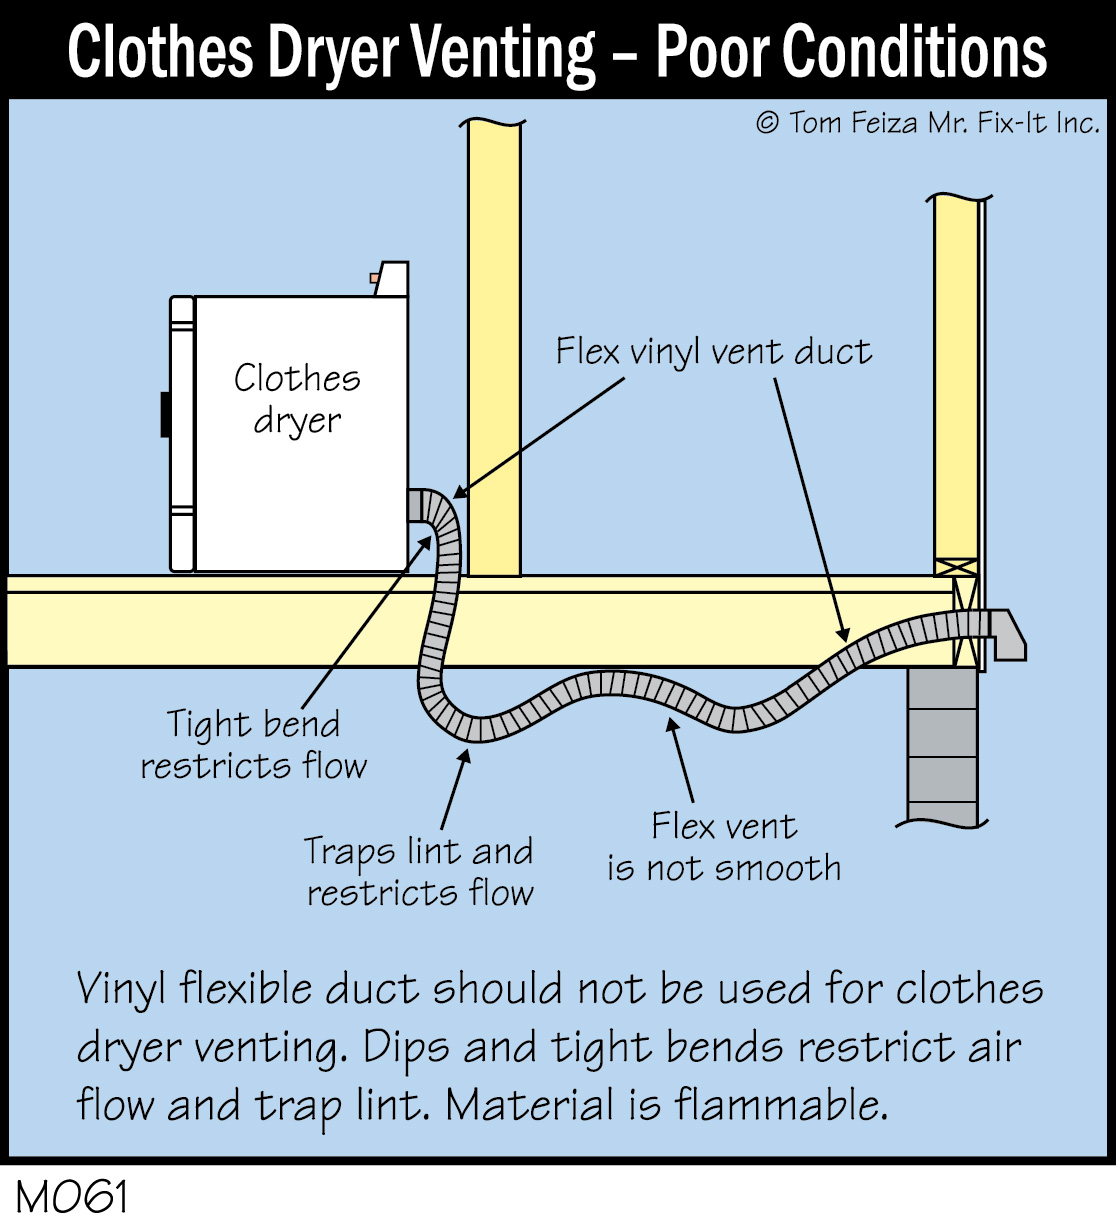 M061C - Clothes Dryer Venting - Poor Conditions_300dpi